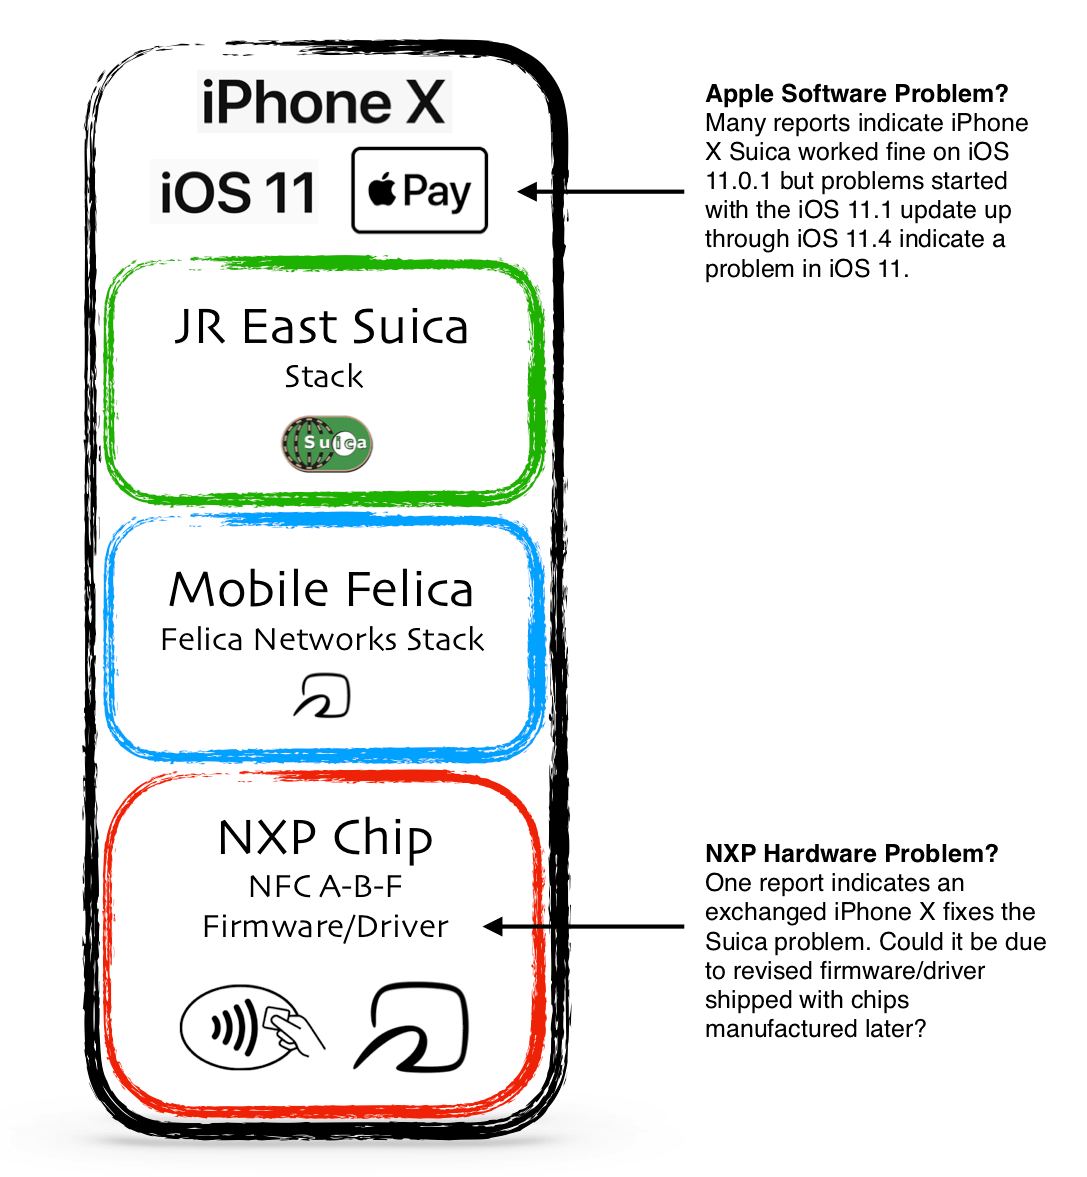 iPhone X Apple Pay Suica Problem Hardware or Software?